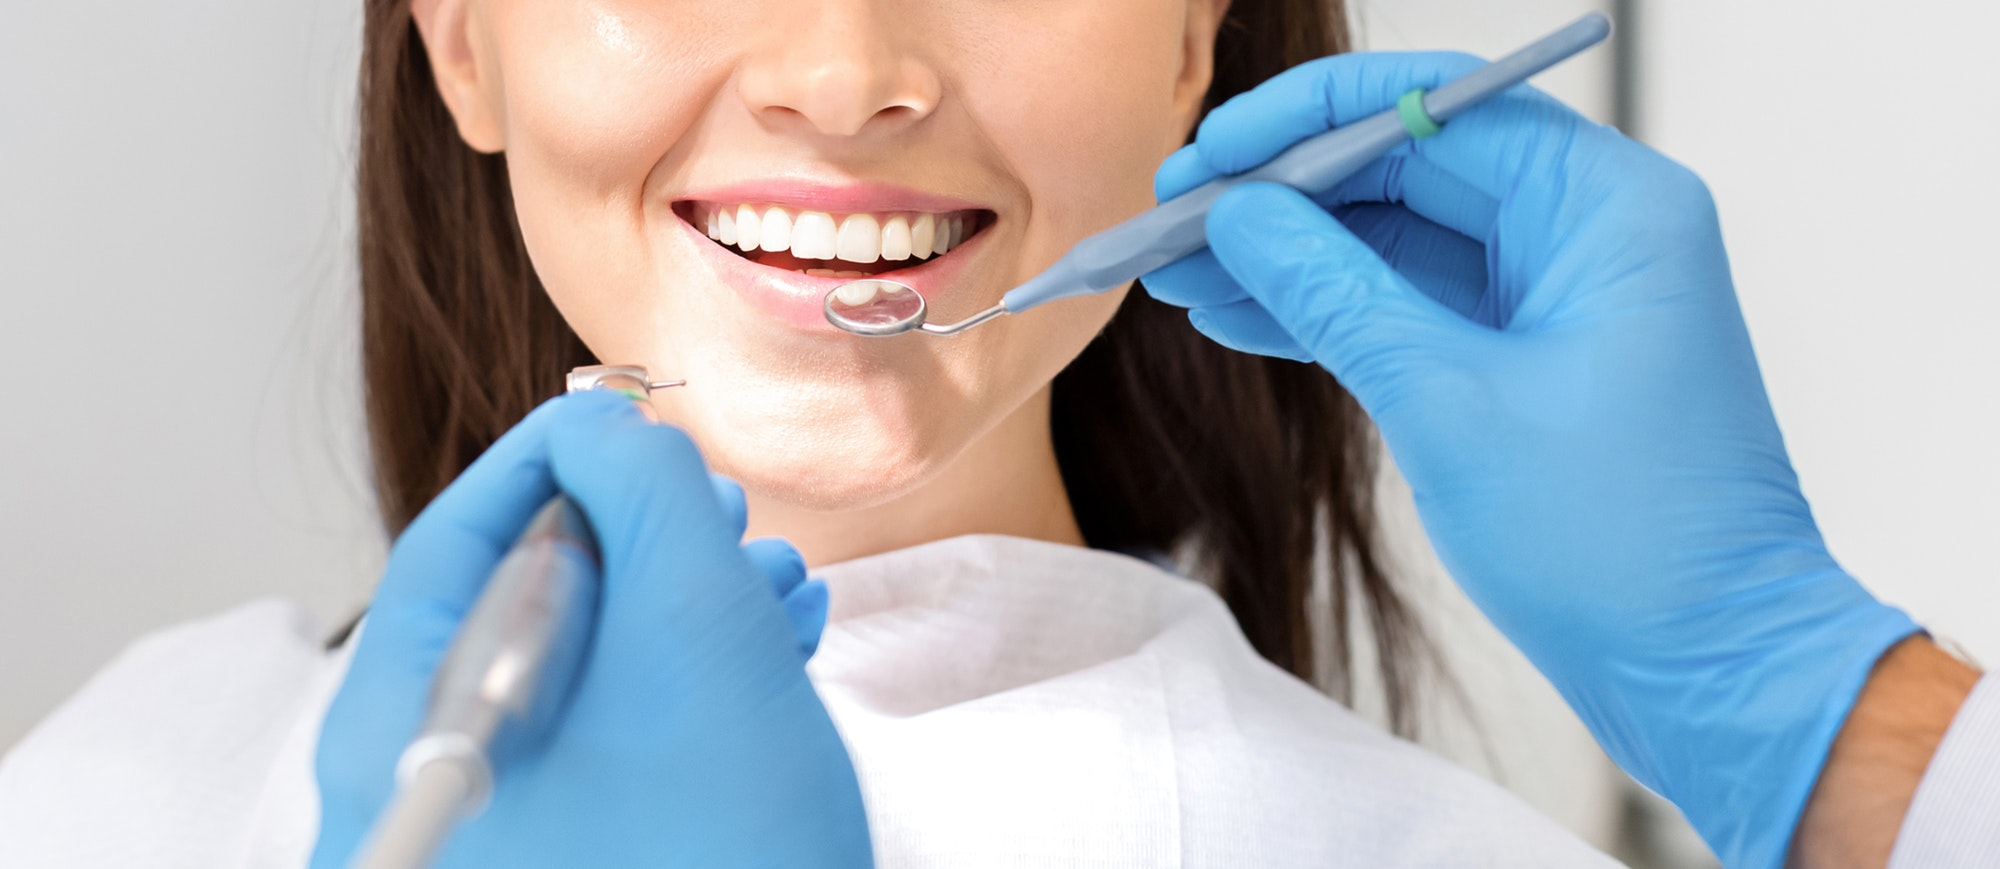 Cropped photo of woman mouth under treatment at dental clinic